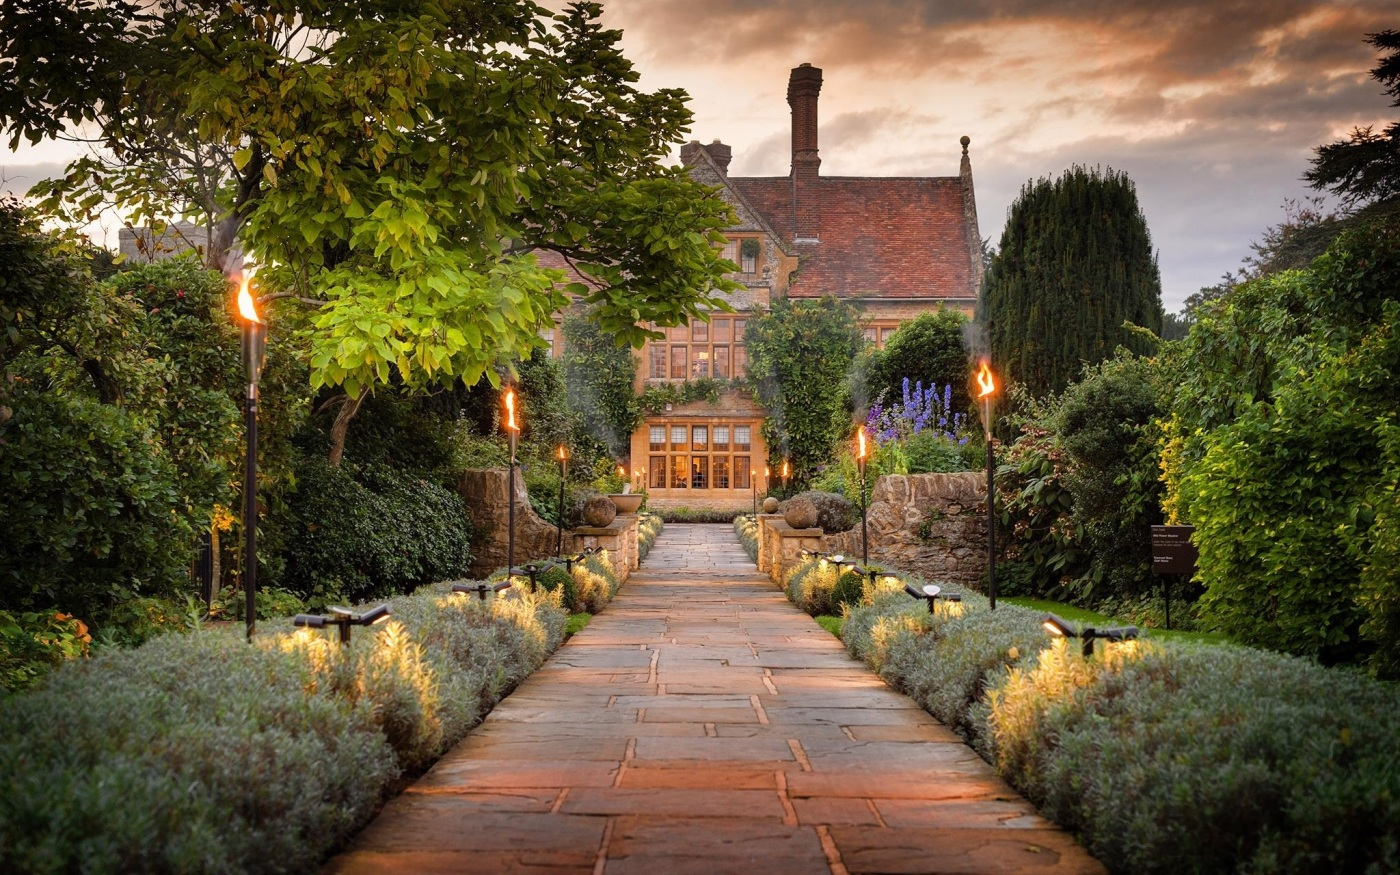 le manoir House with lights